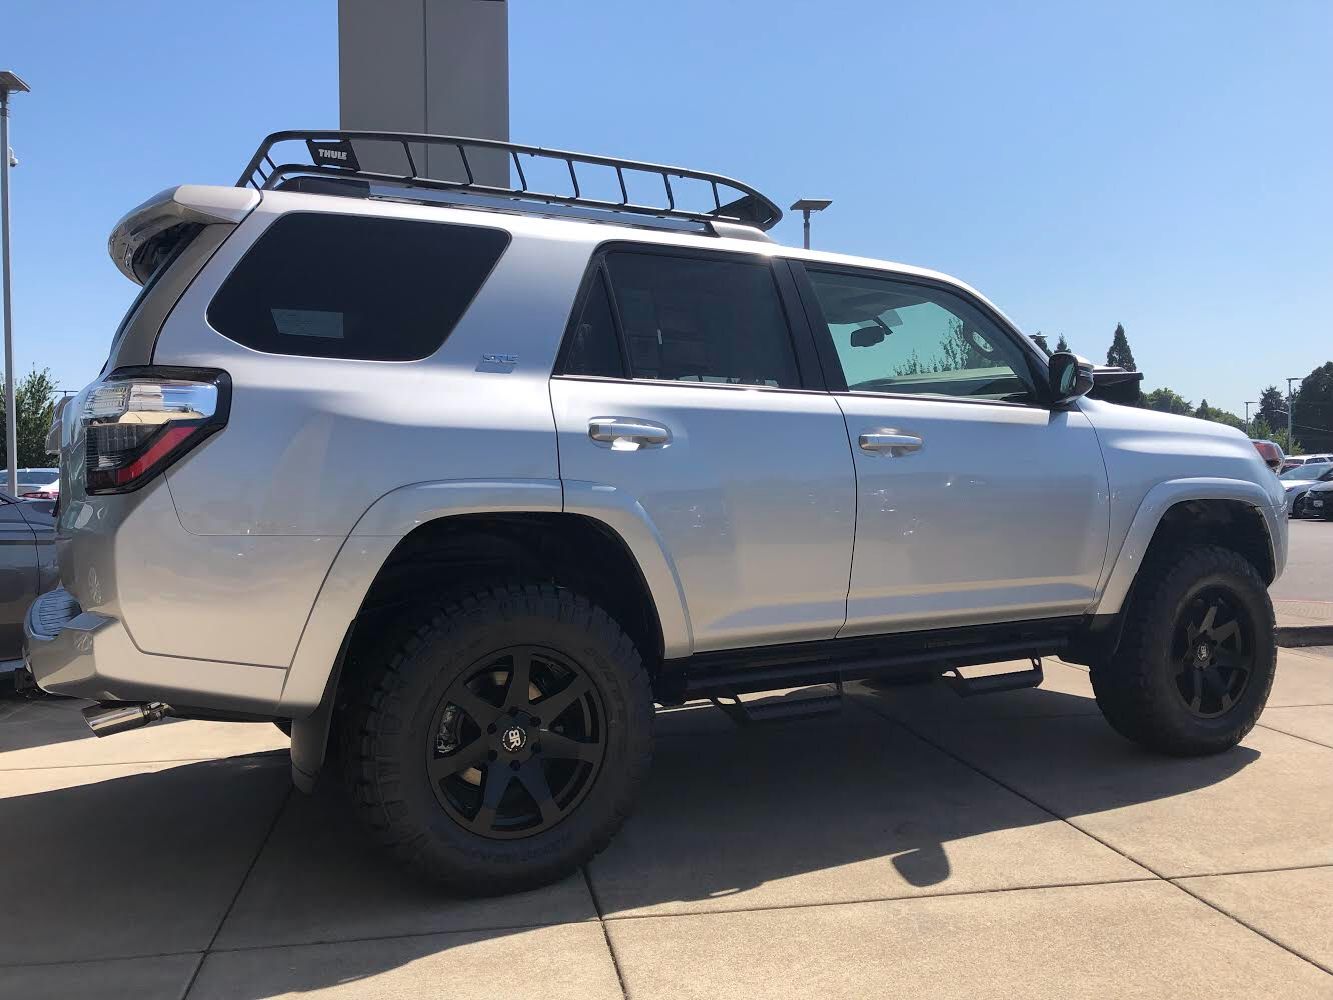 2019 Toyota 4runner With Black Rhino Mozambique Wheels 2019 Toyota 4runner Toyota4runner Blackrhino Wheels Rim Toyota 4runner Black Rhino Wheels 4runner